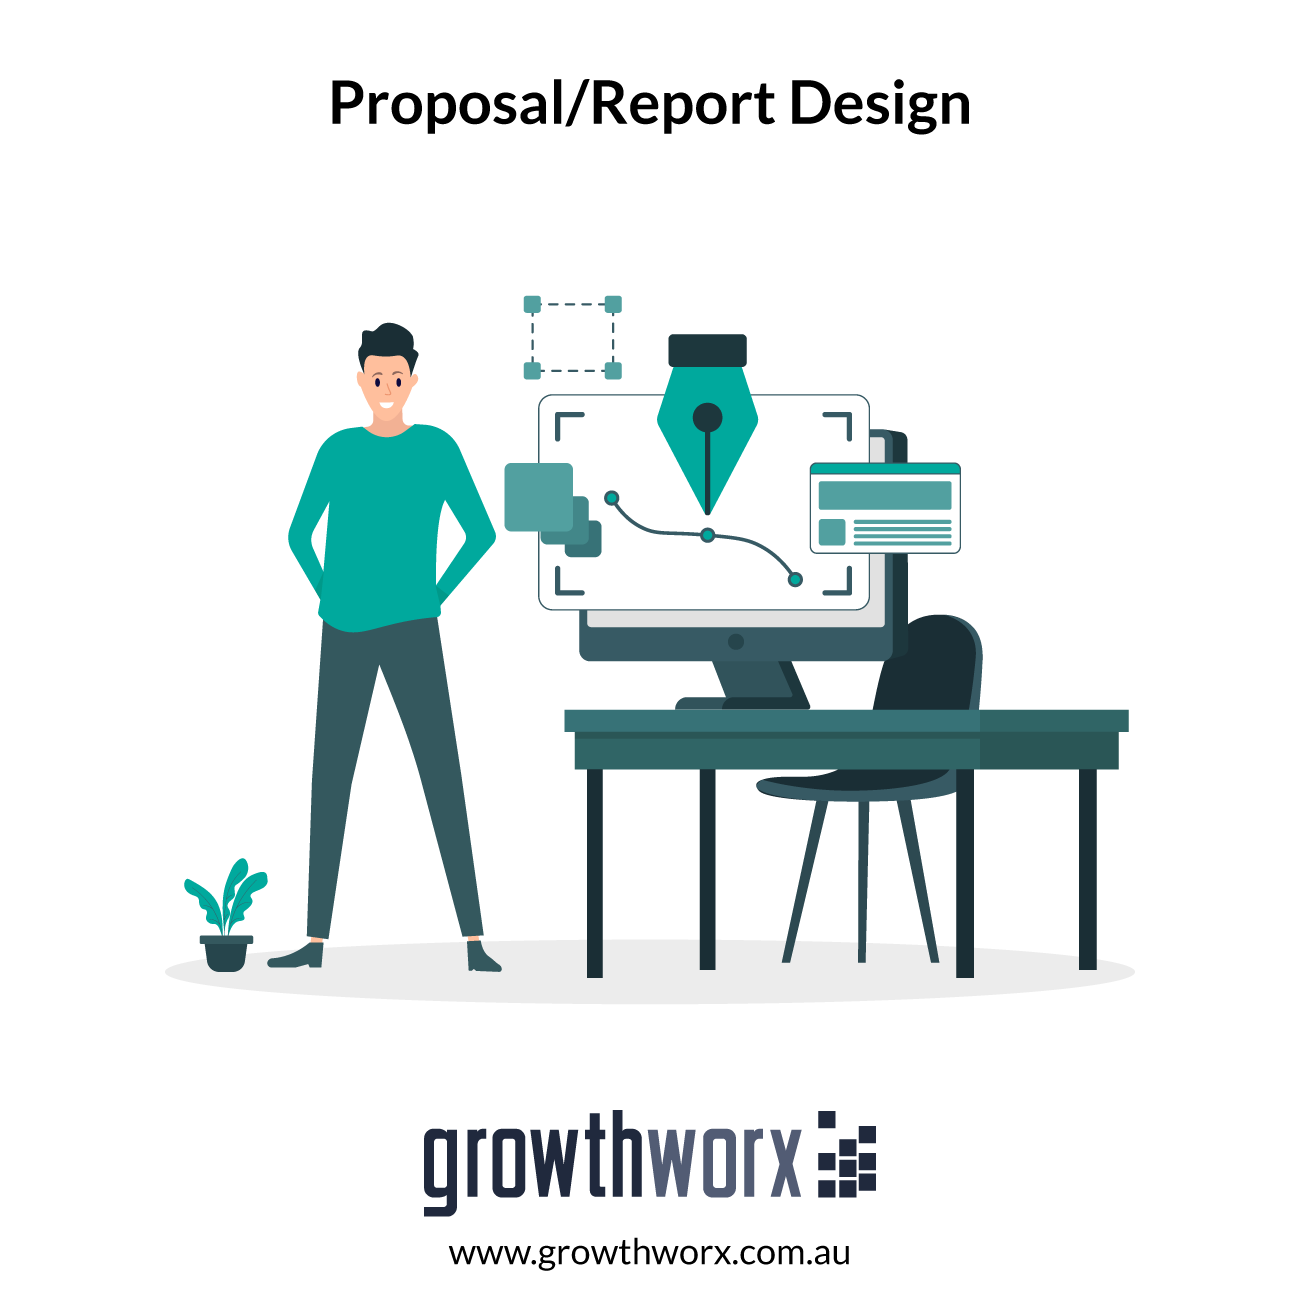 Design up to 20 page proposal/report in pdf + original files. Cover included. 1